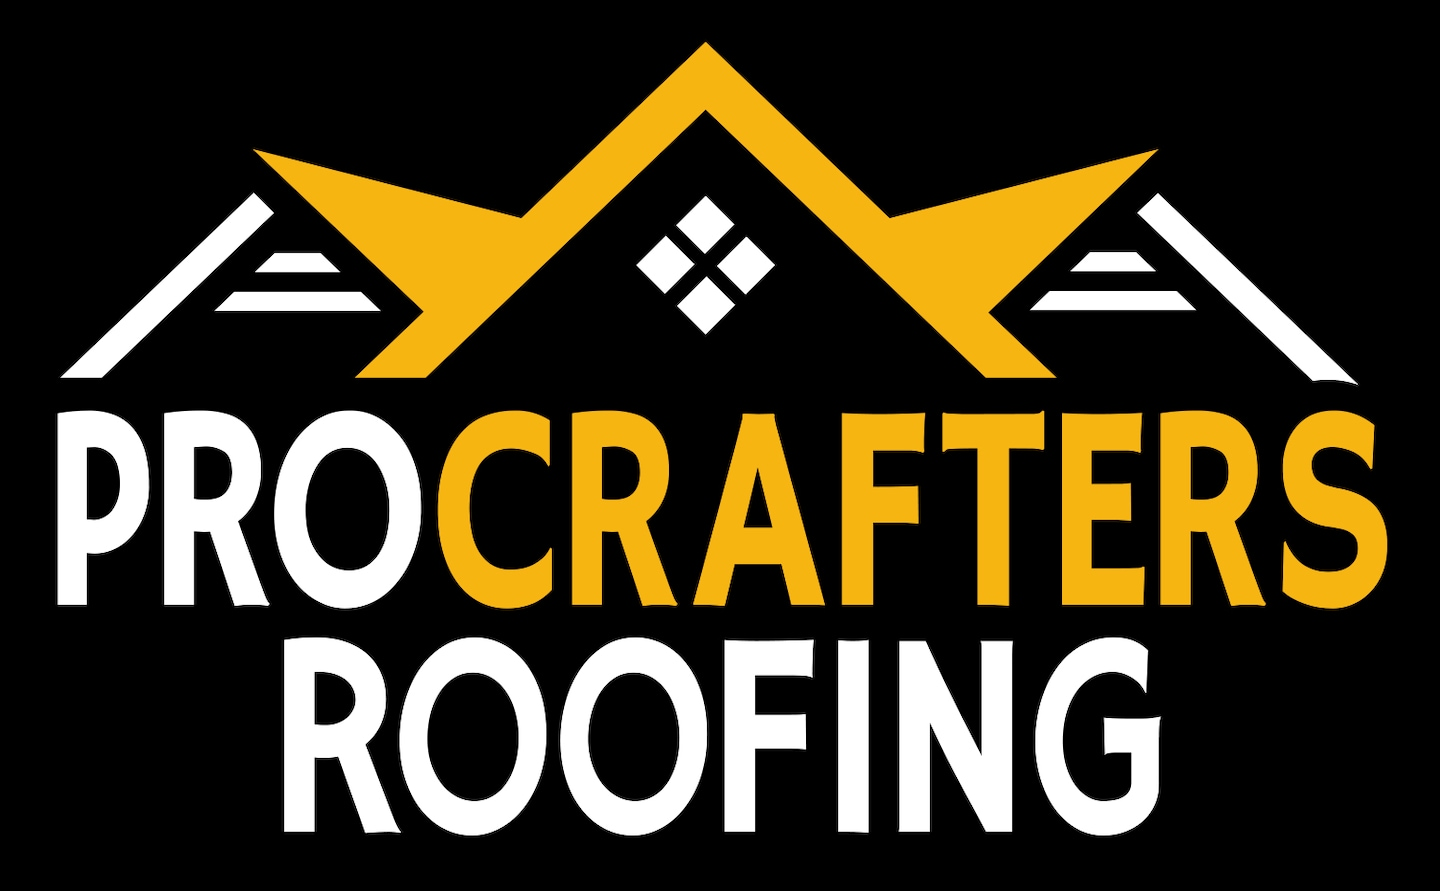 ProCrafters Roofing